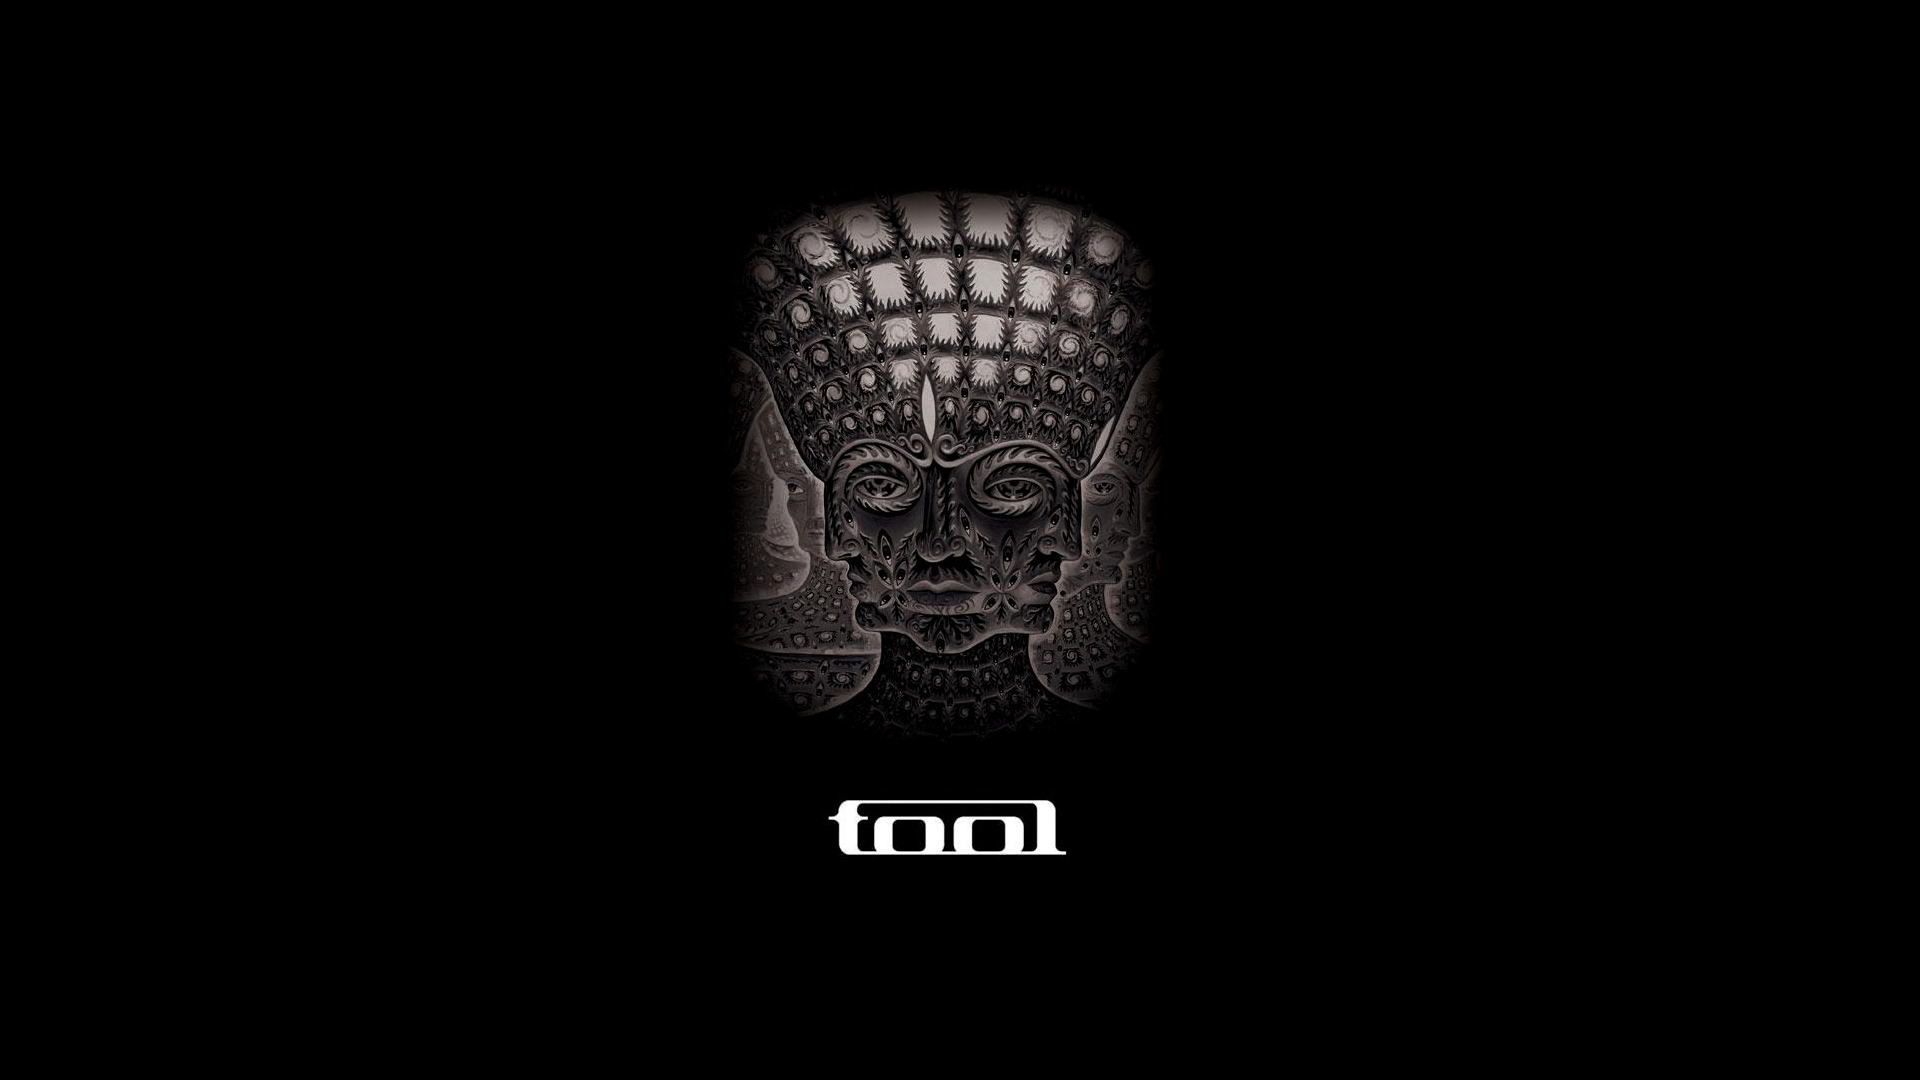 tool band phone wallpaper – photo #4. Touch of Modern Modern Products amp  Styles